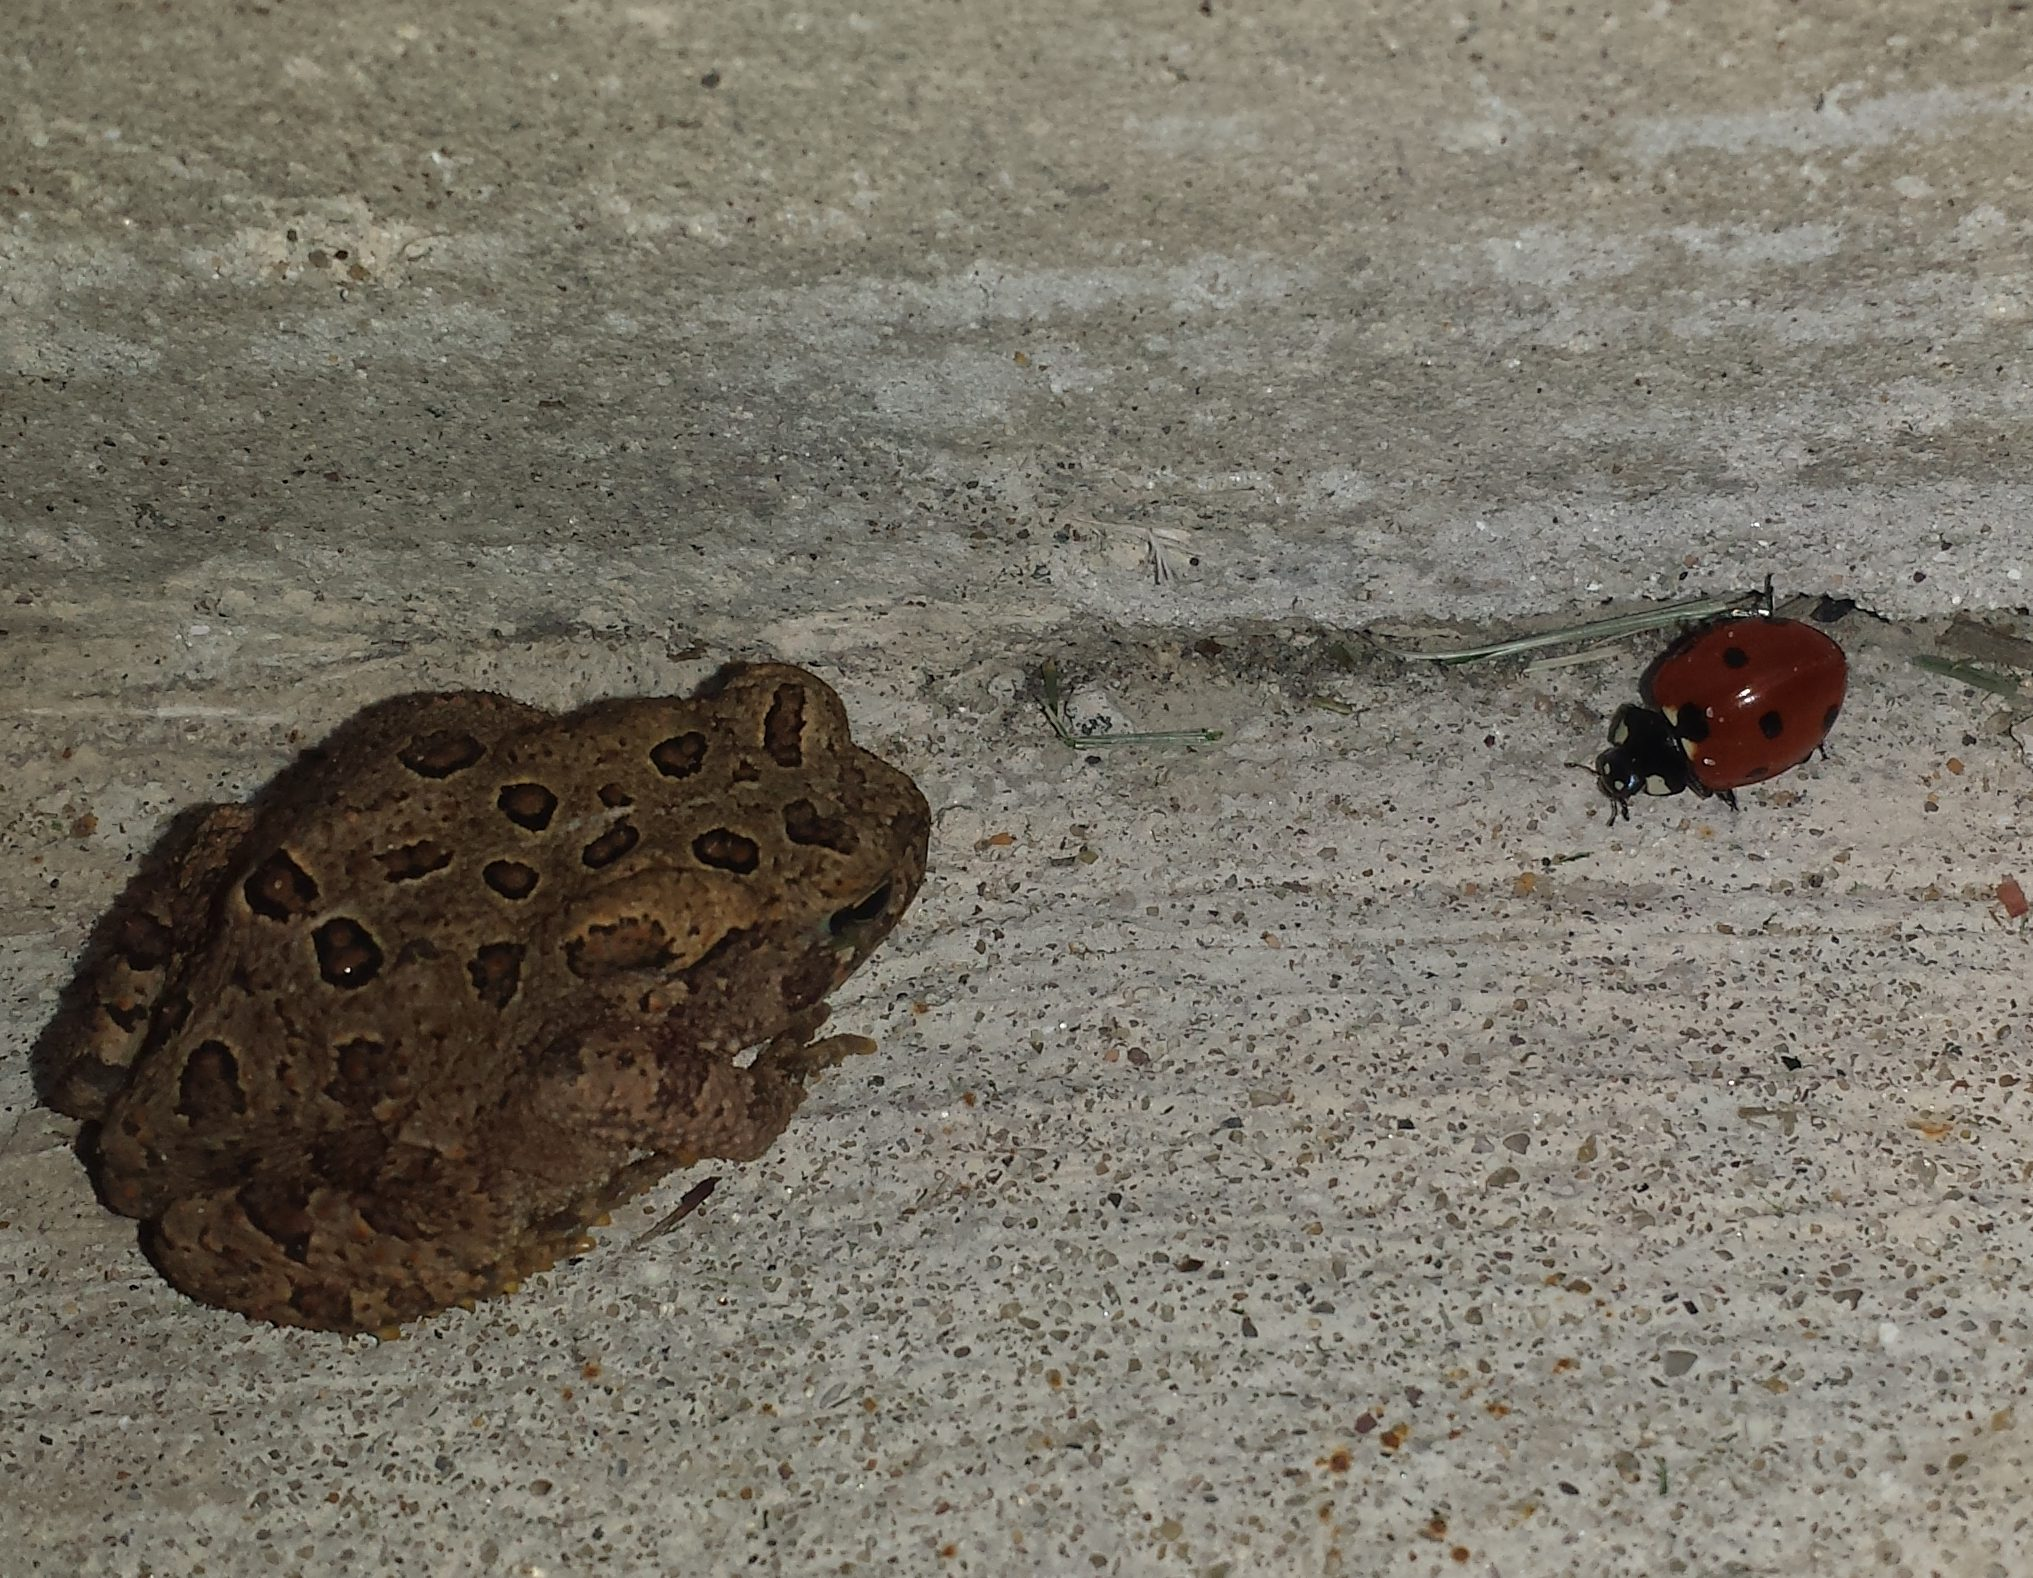 American Toad with ladybug in stairwell, University of Wisconsin-Parkside, Somers, Wisconsin,16 August 2016.